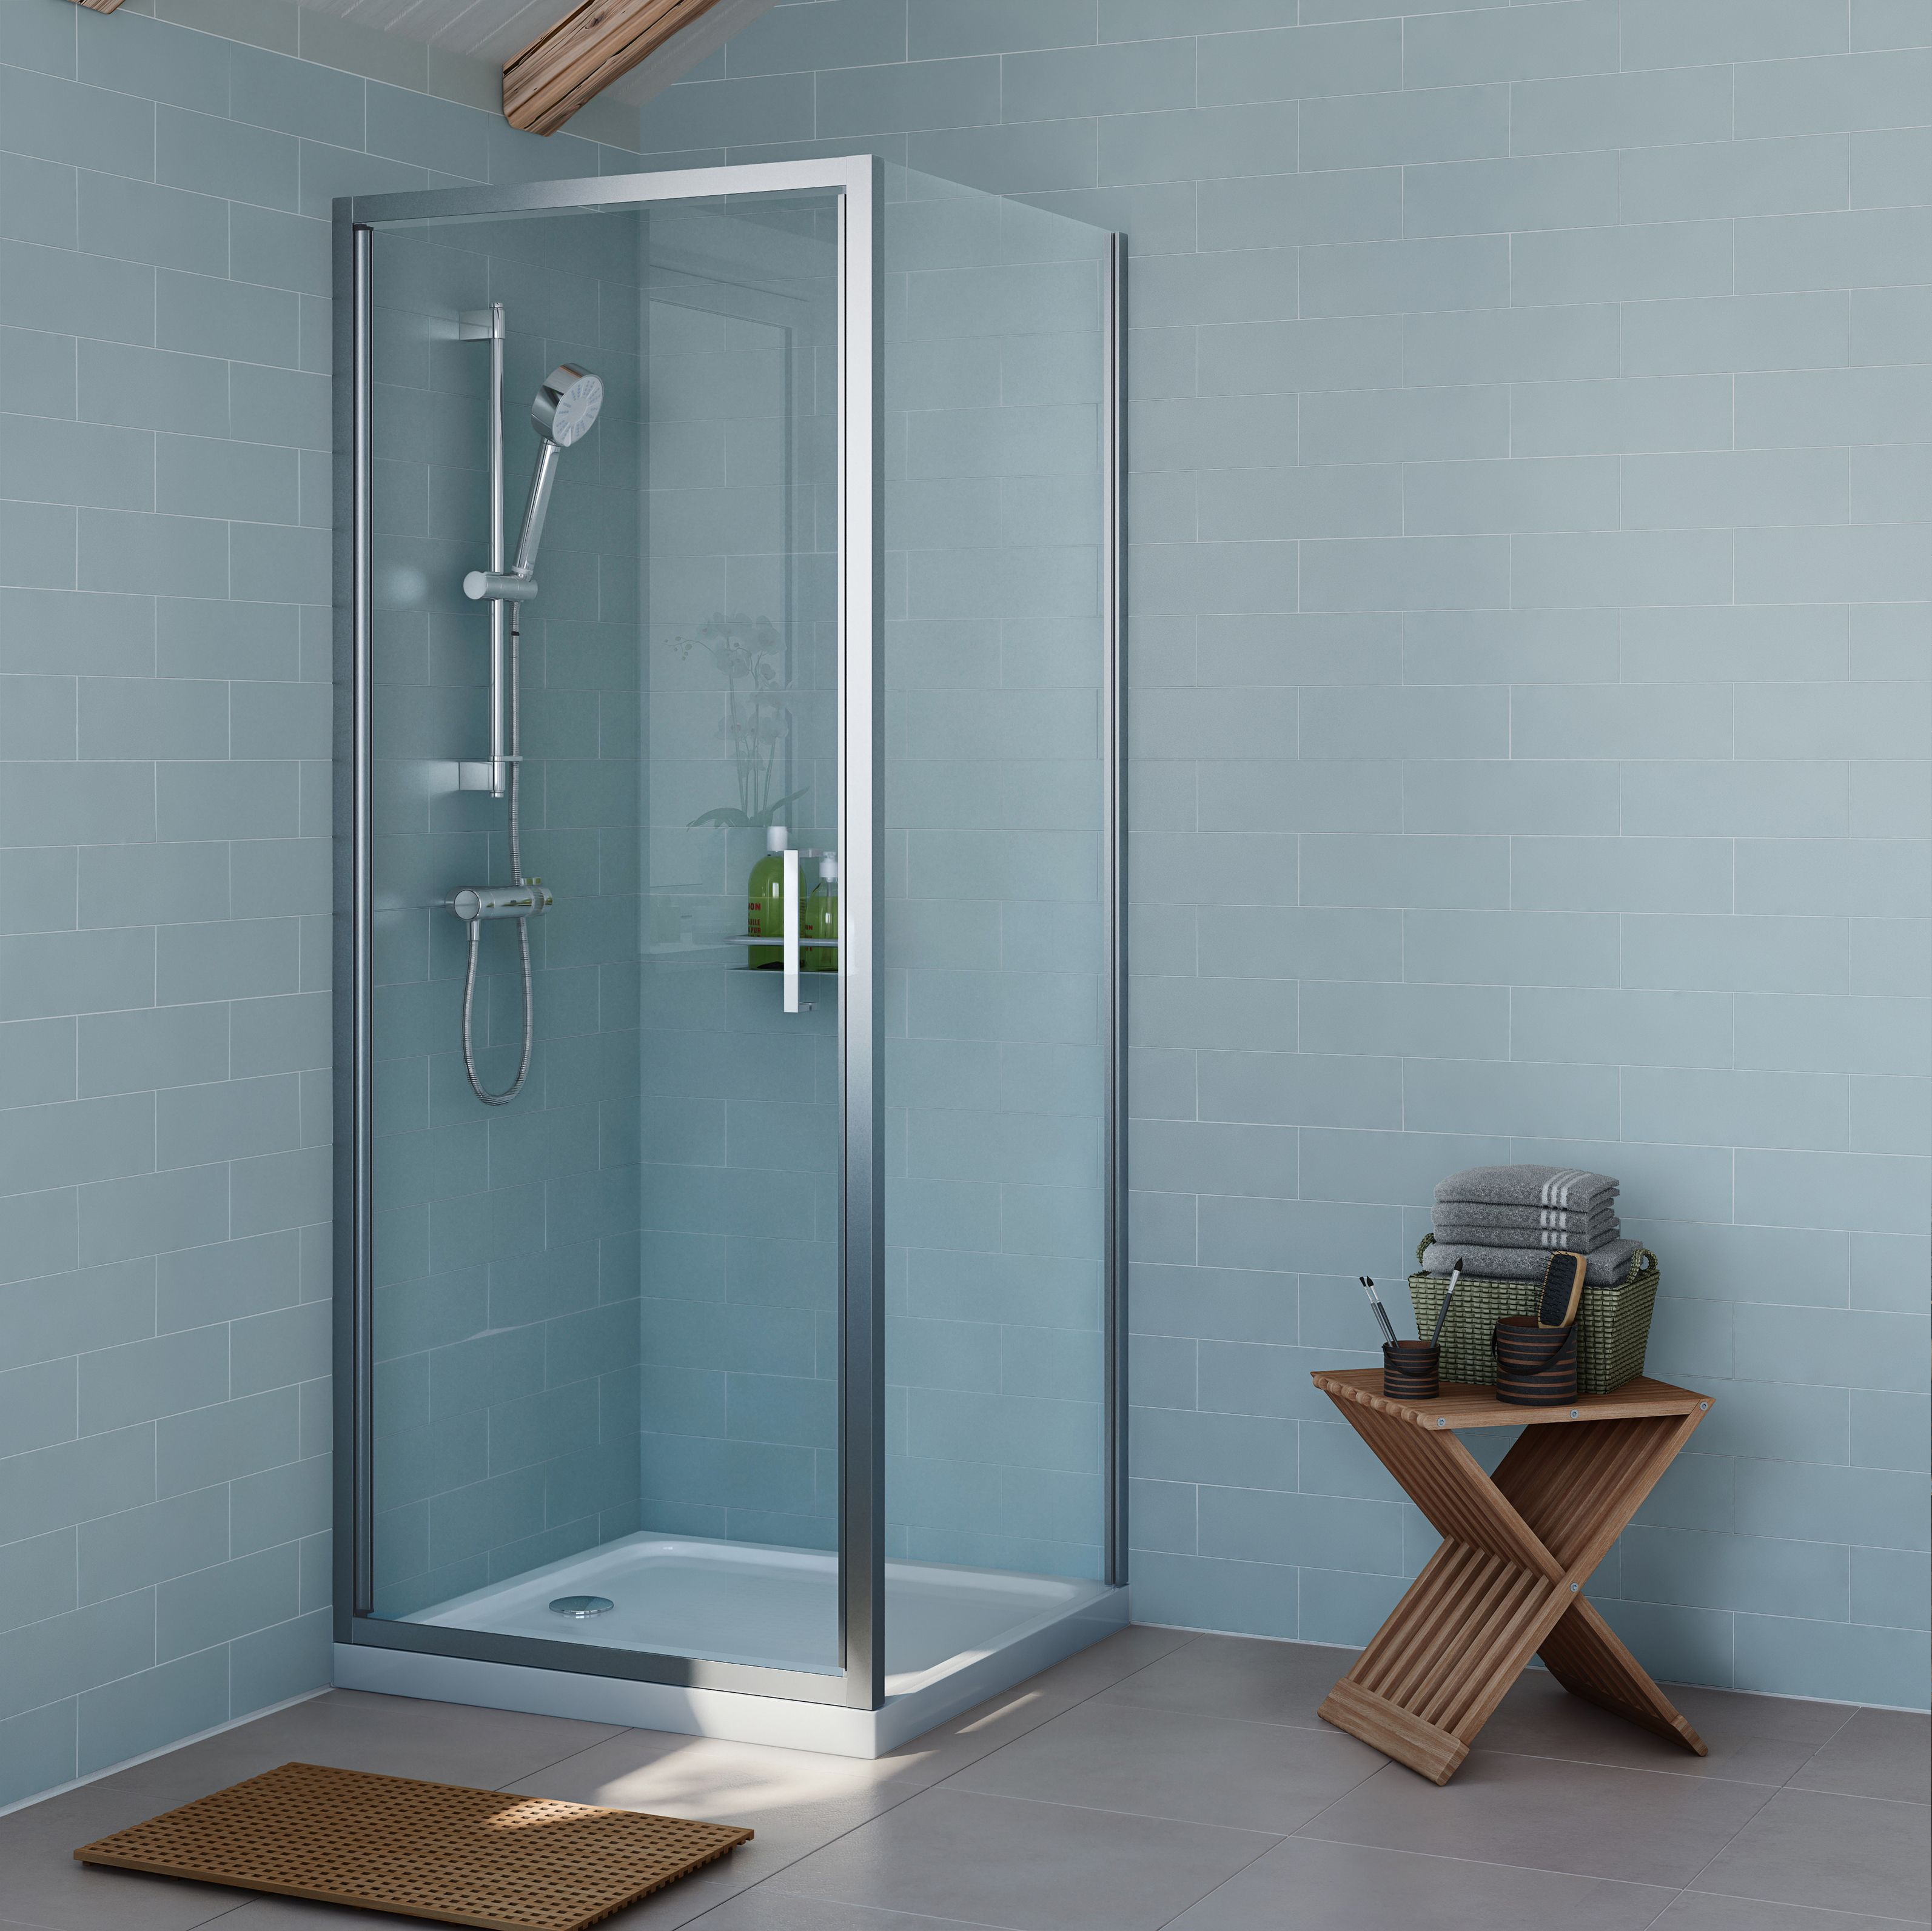 Cooke Lewis Exuberance Square Shower Enclosure Tray Waste Pack With Hinged Door W 800mm D 800mm Departments Diy At B Q